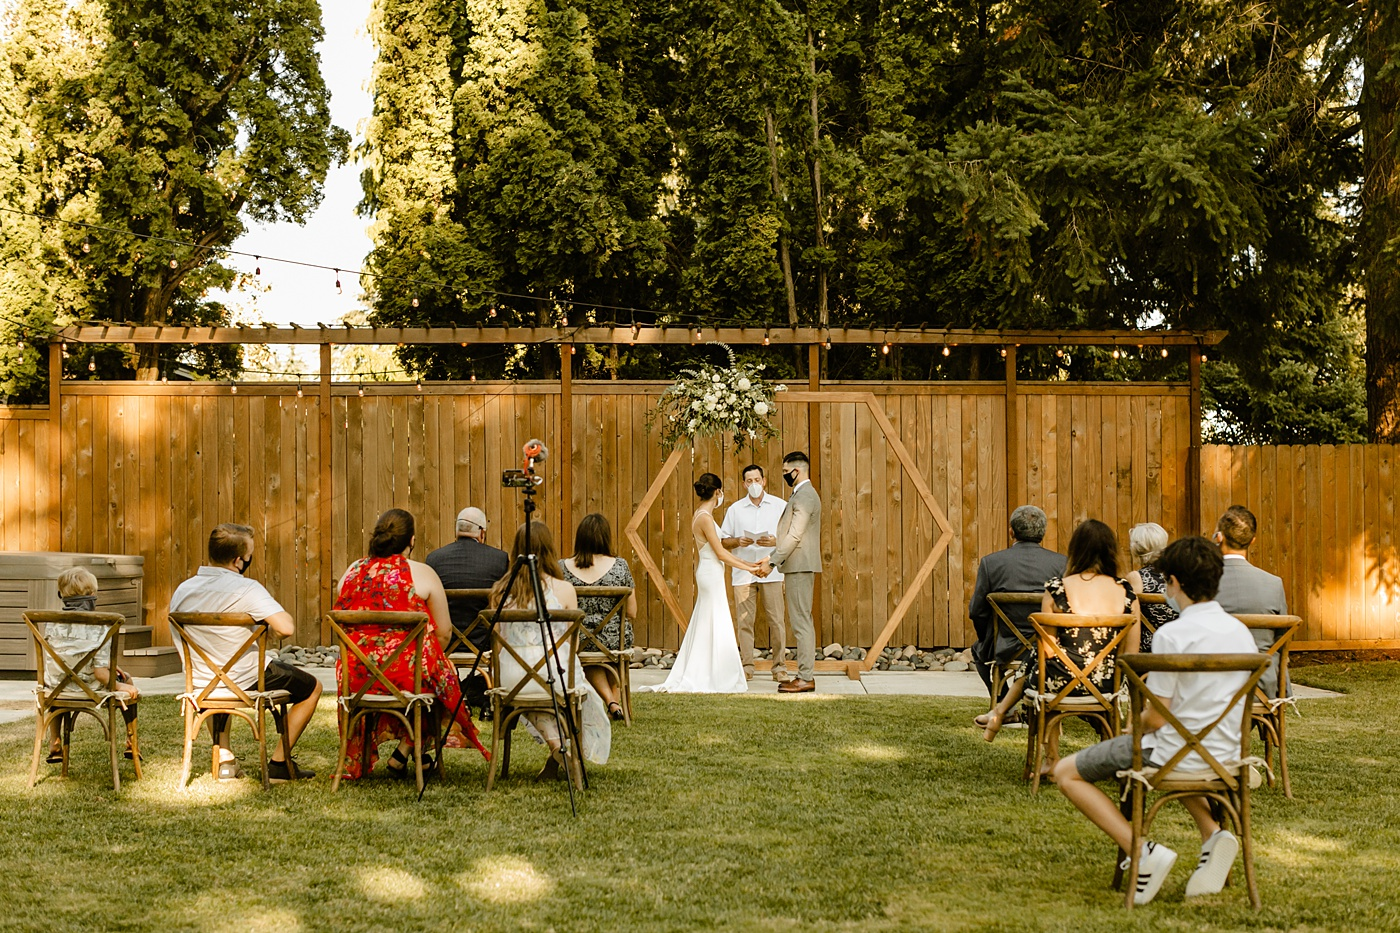 5 Things to Remember When Your Wedding Doesn't Go as Planned planning a wedding in the pandemic wearing masks backyard ceremony